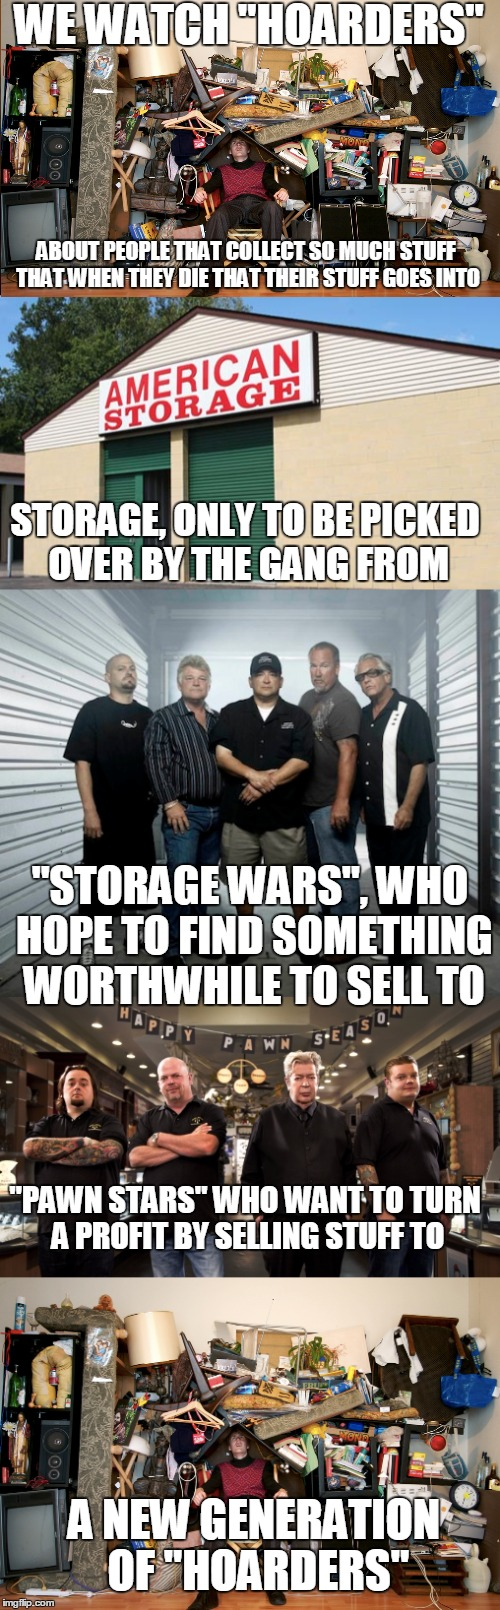 "The circle of life | WE WATCH ""HOARDERS"" A NEW GENERATION OF ""HOARDERS"" ABOUT PEOPLE THAT COLLECT SO MUCH STUFF THAT WHEN THEY DIE THAT THEIR STUFF GOES INTO STO 